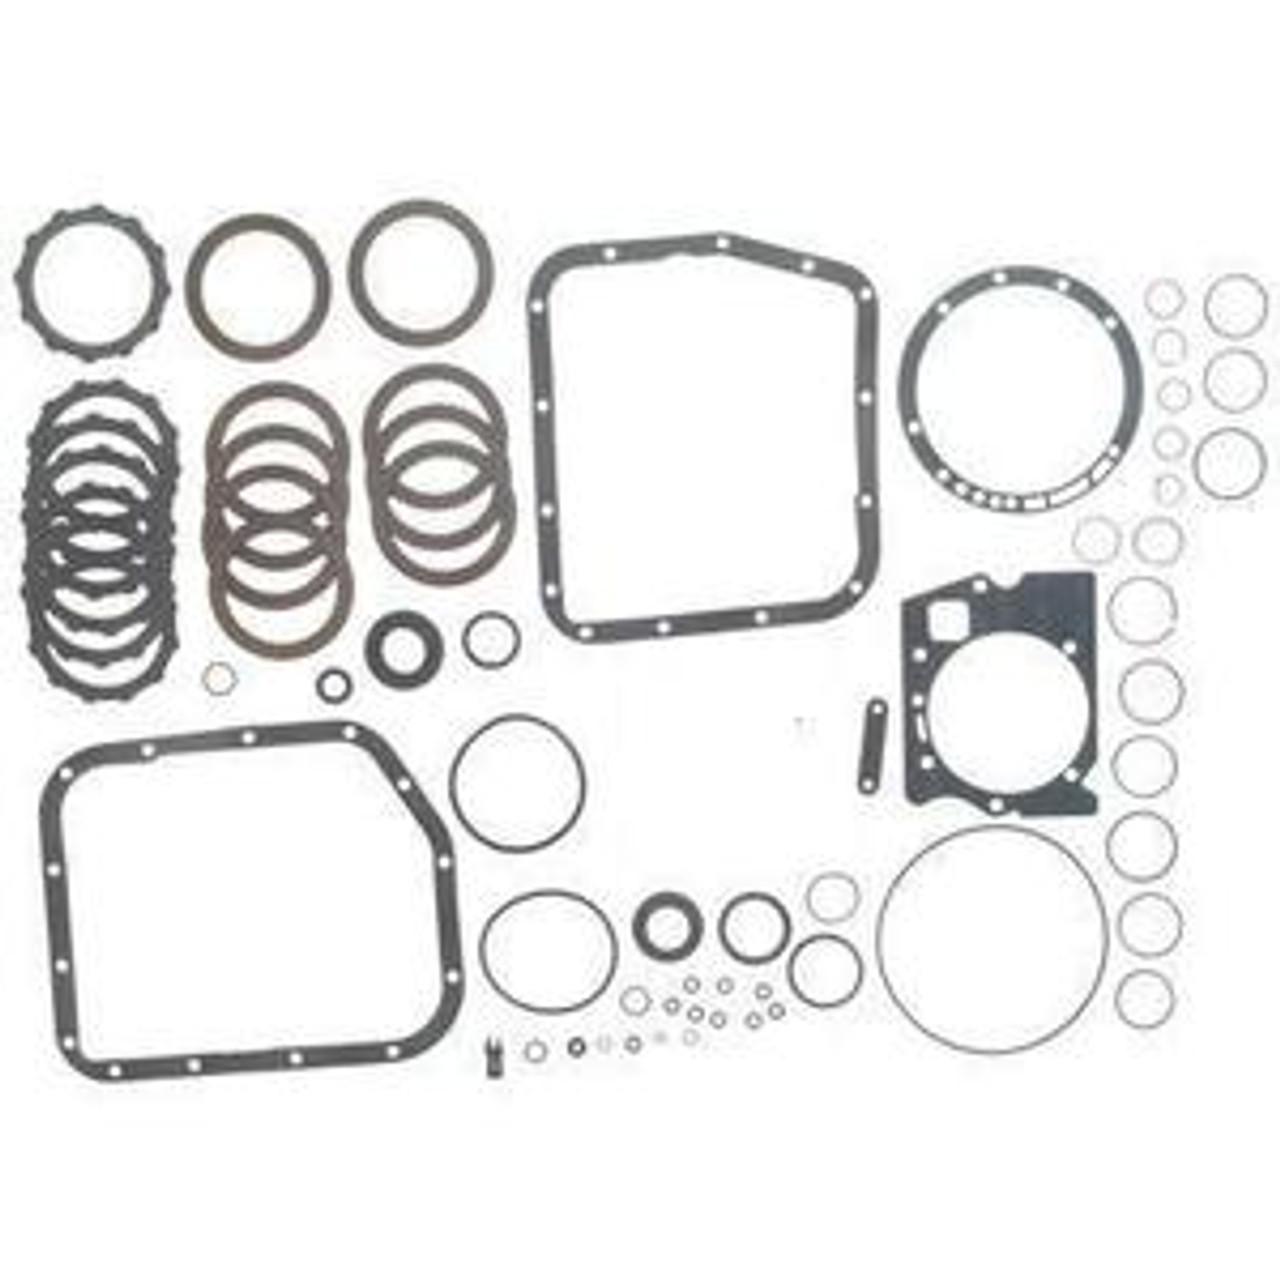 A904 A998 A999 TF6 TRANSMISSION REBUILD KIT WITH STEELS